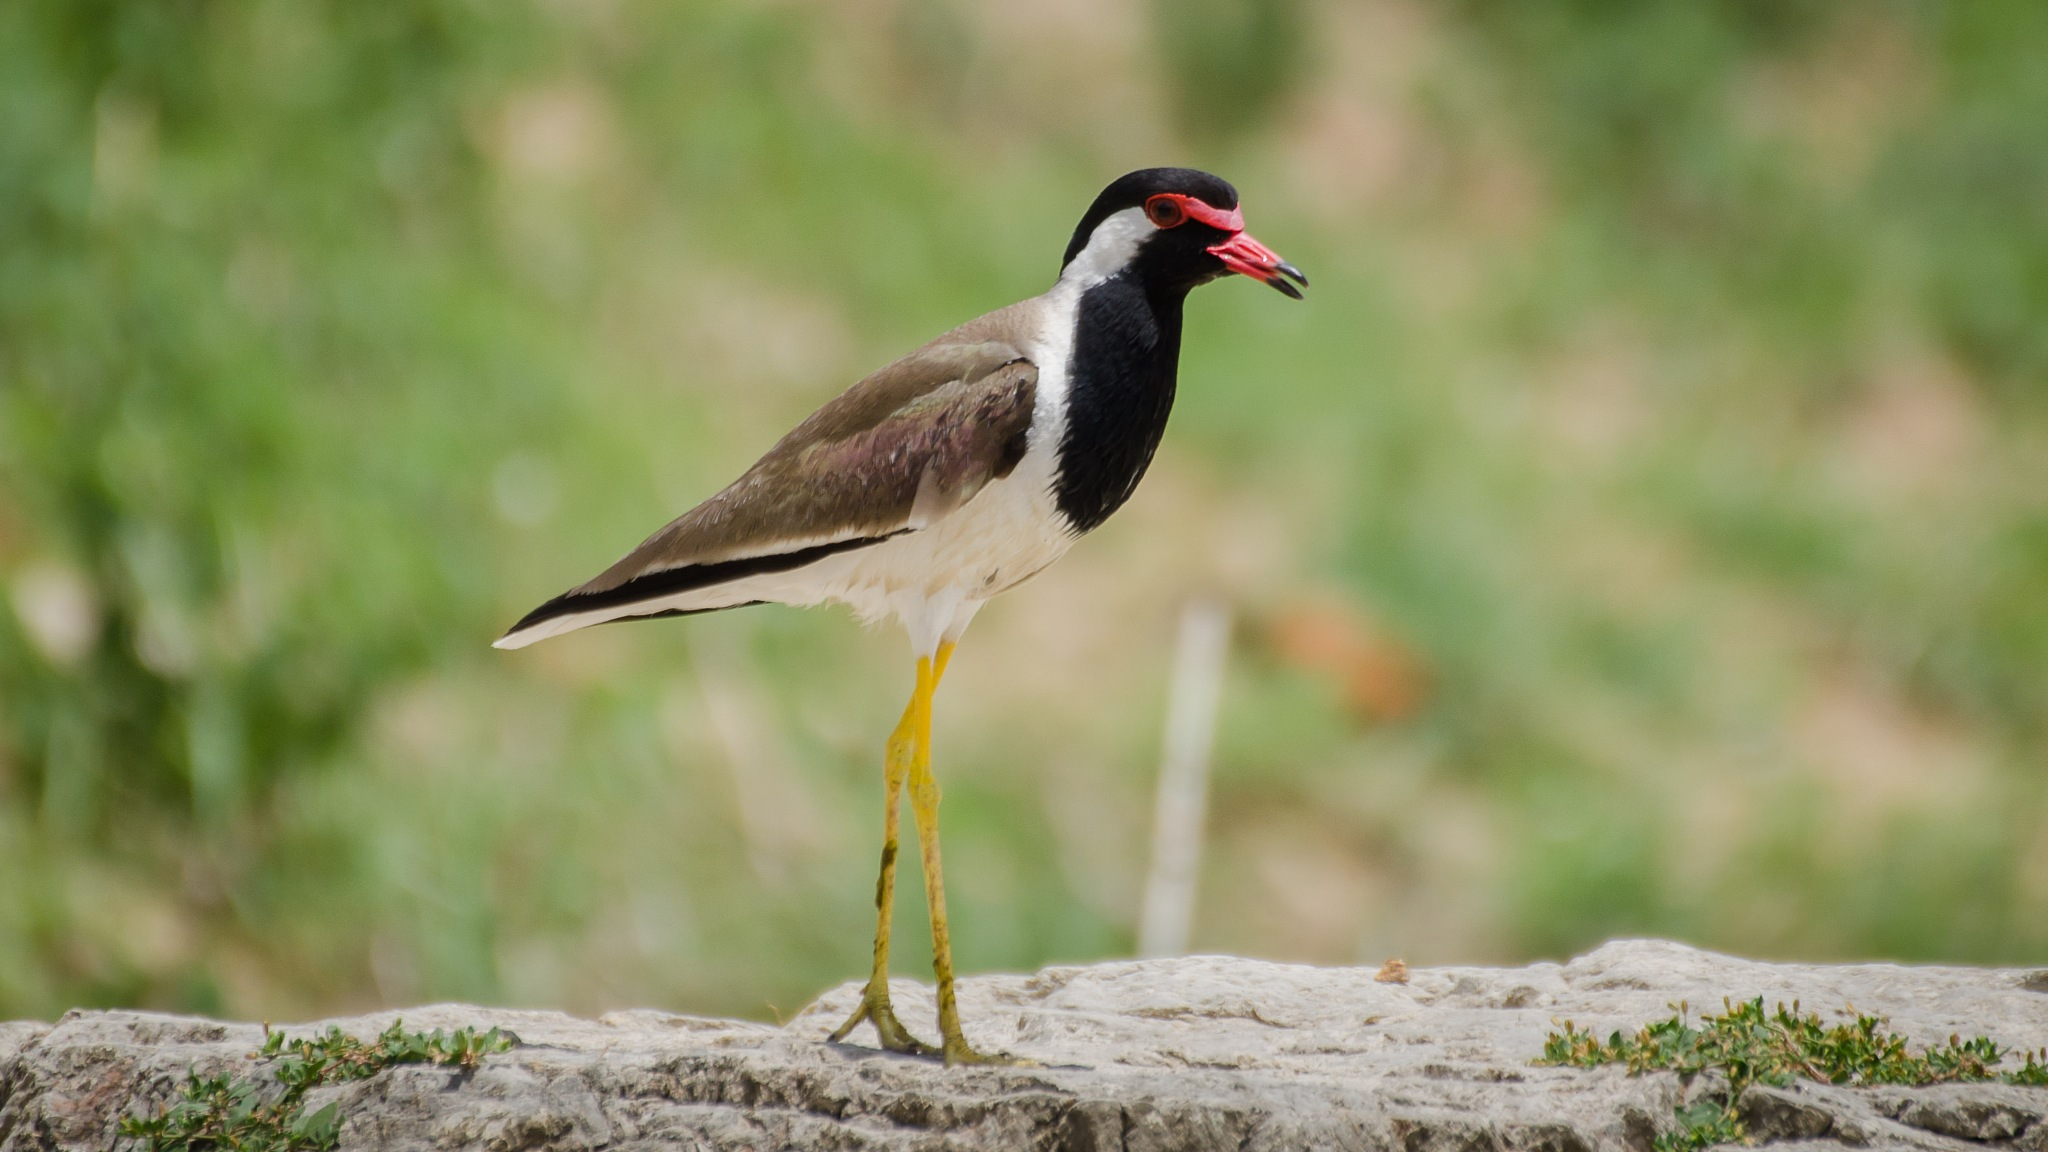 Red Wattled Lapwing by drkvijay2000